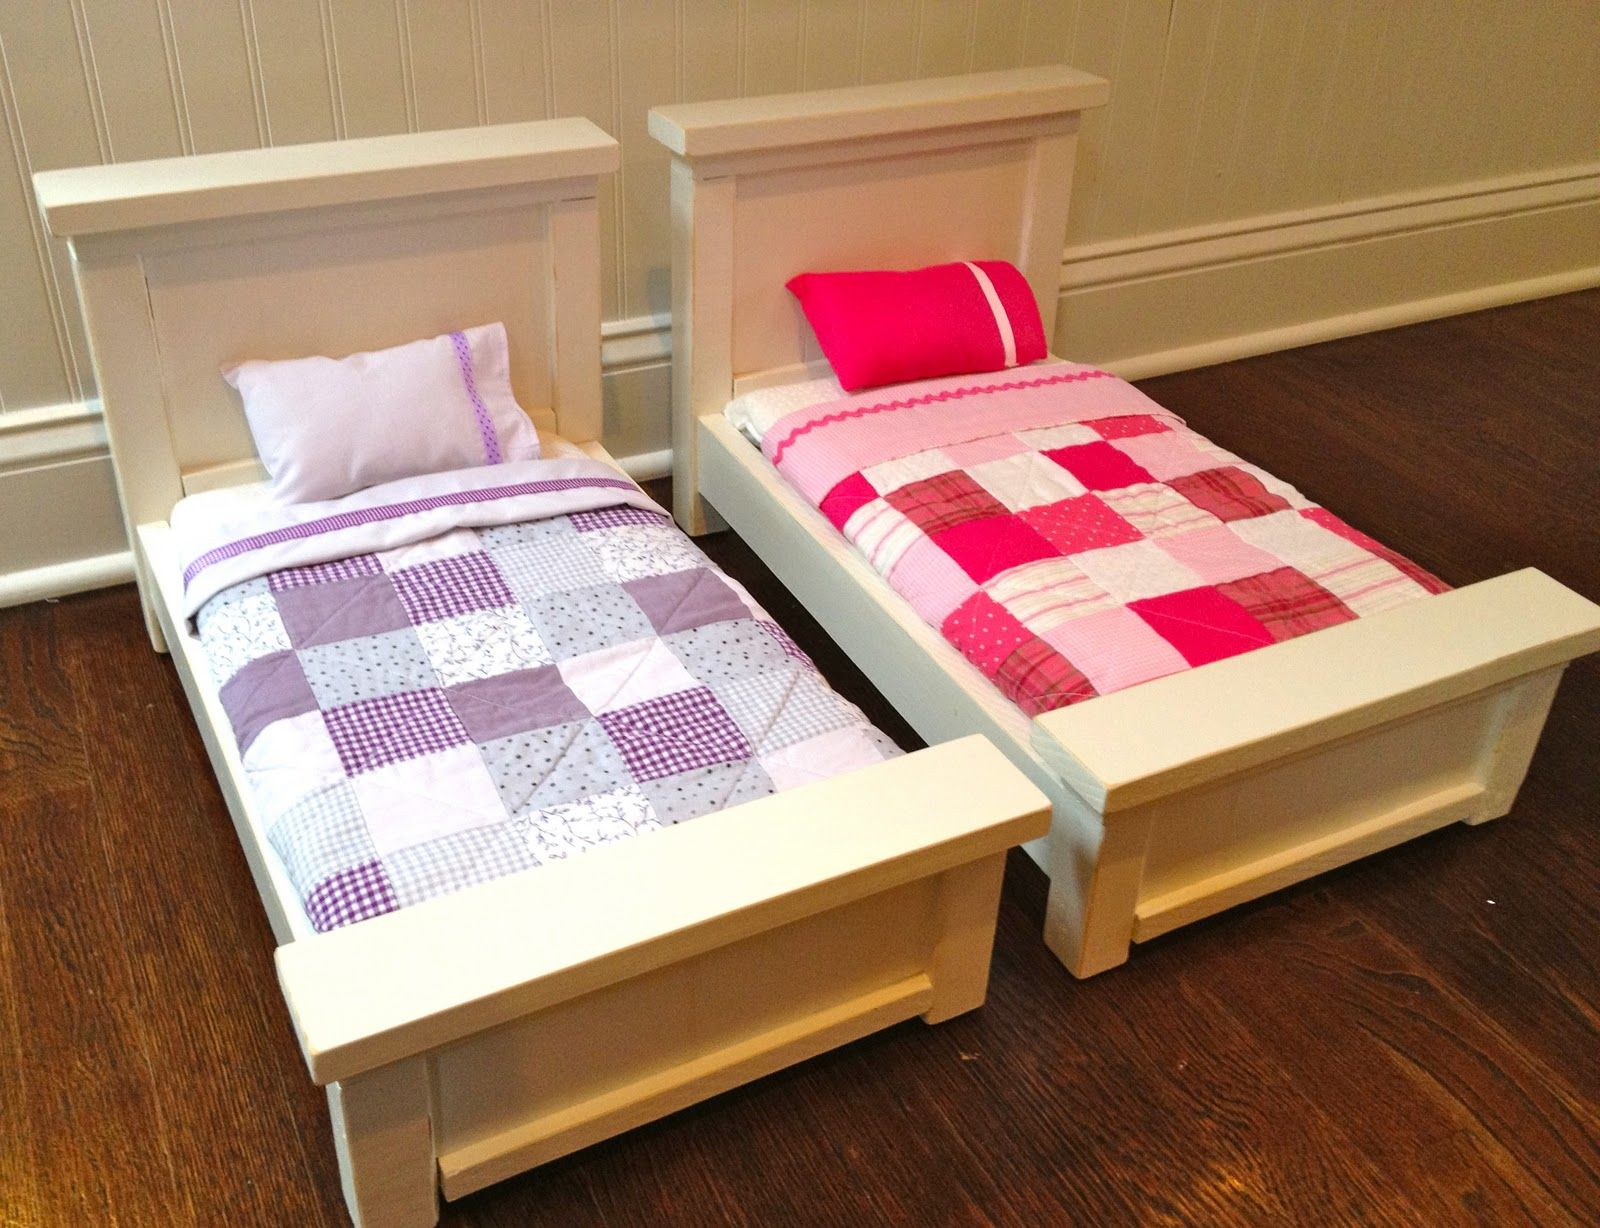 Best How To Make Mini Beds For America Girl Dolls That S My 400 x 300